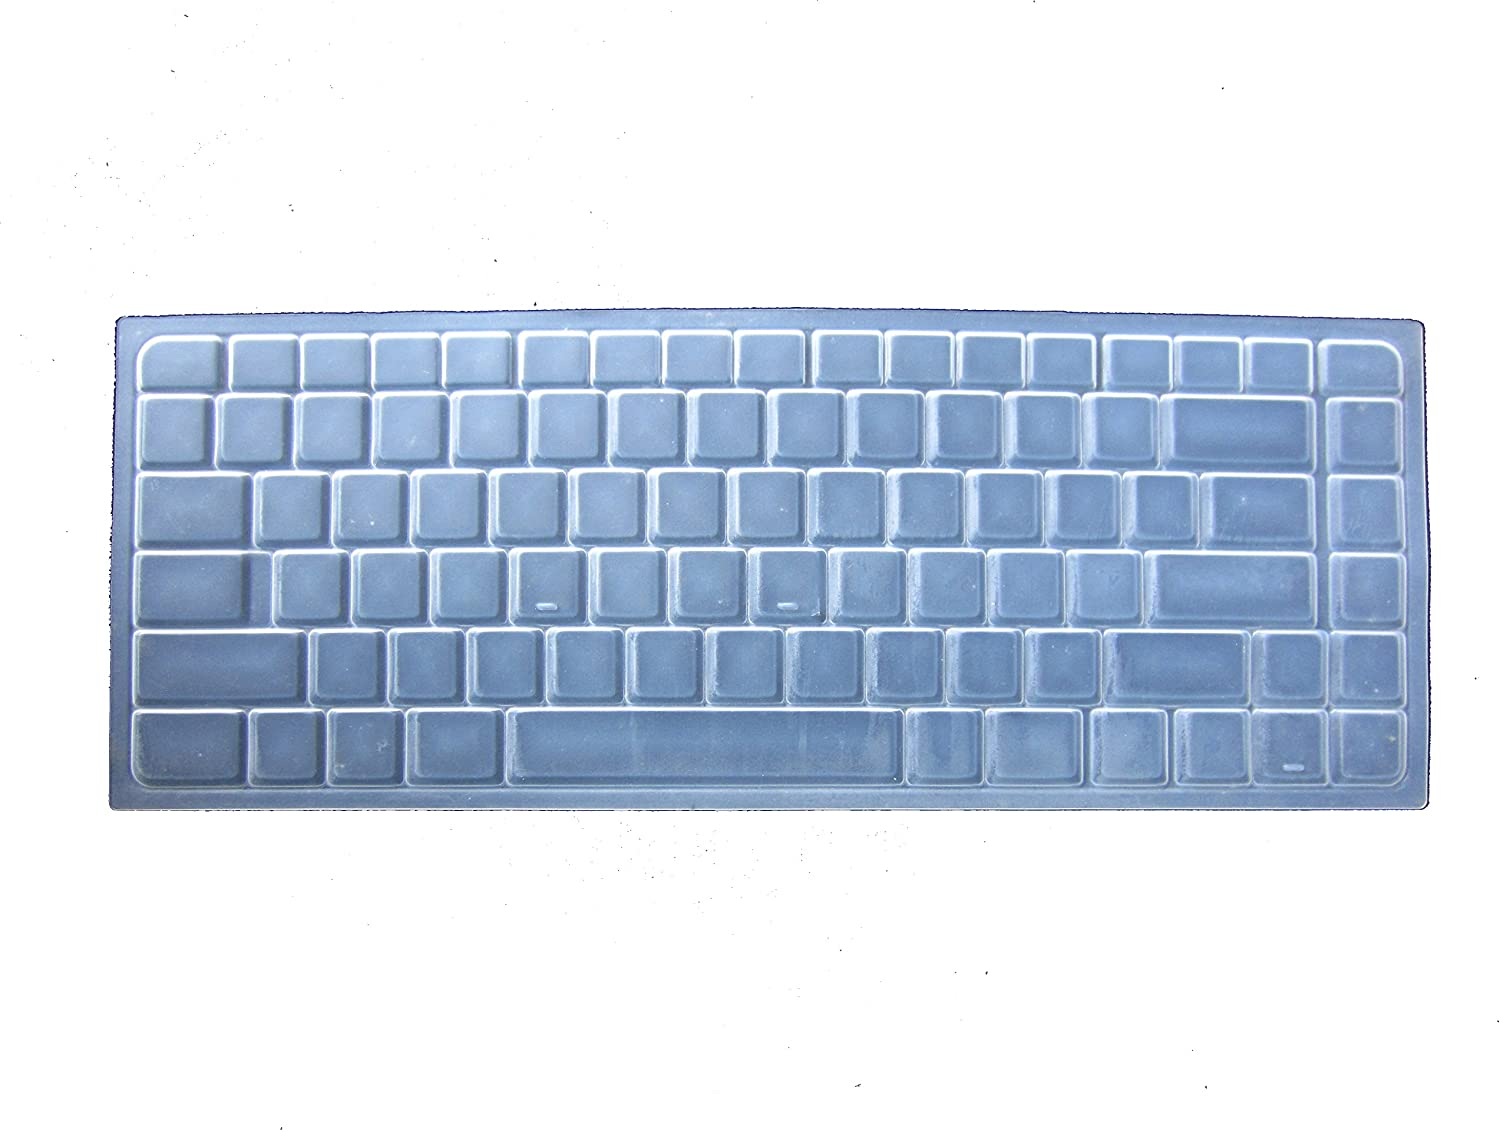 keyboard skin cover protector for Dell Studio 15,1535,1536,1537,1555,1557,1558,1435,XPS M1330,M1530,